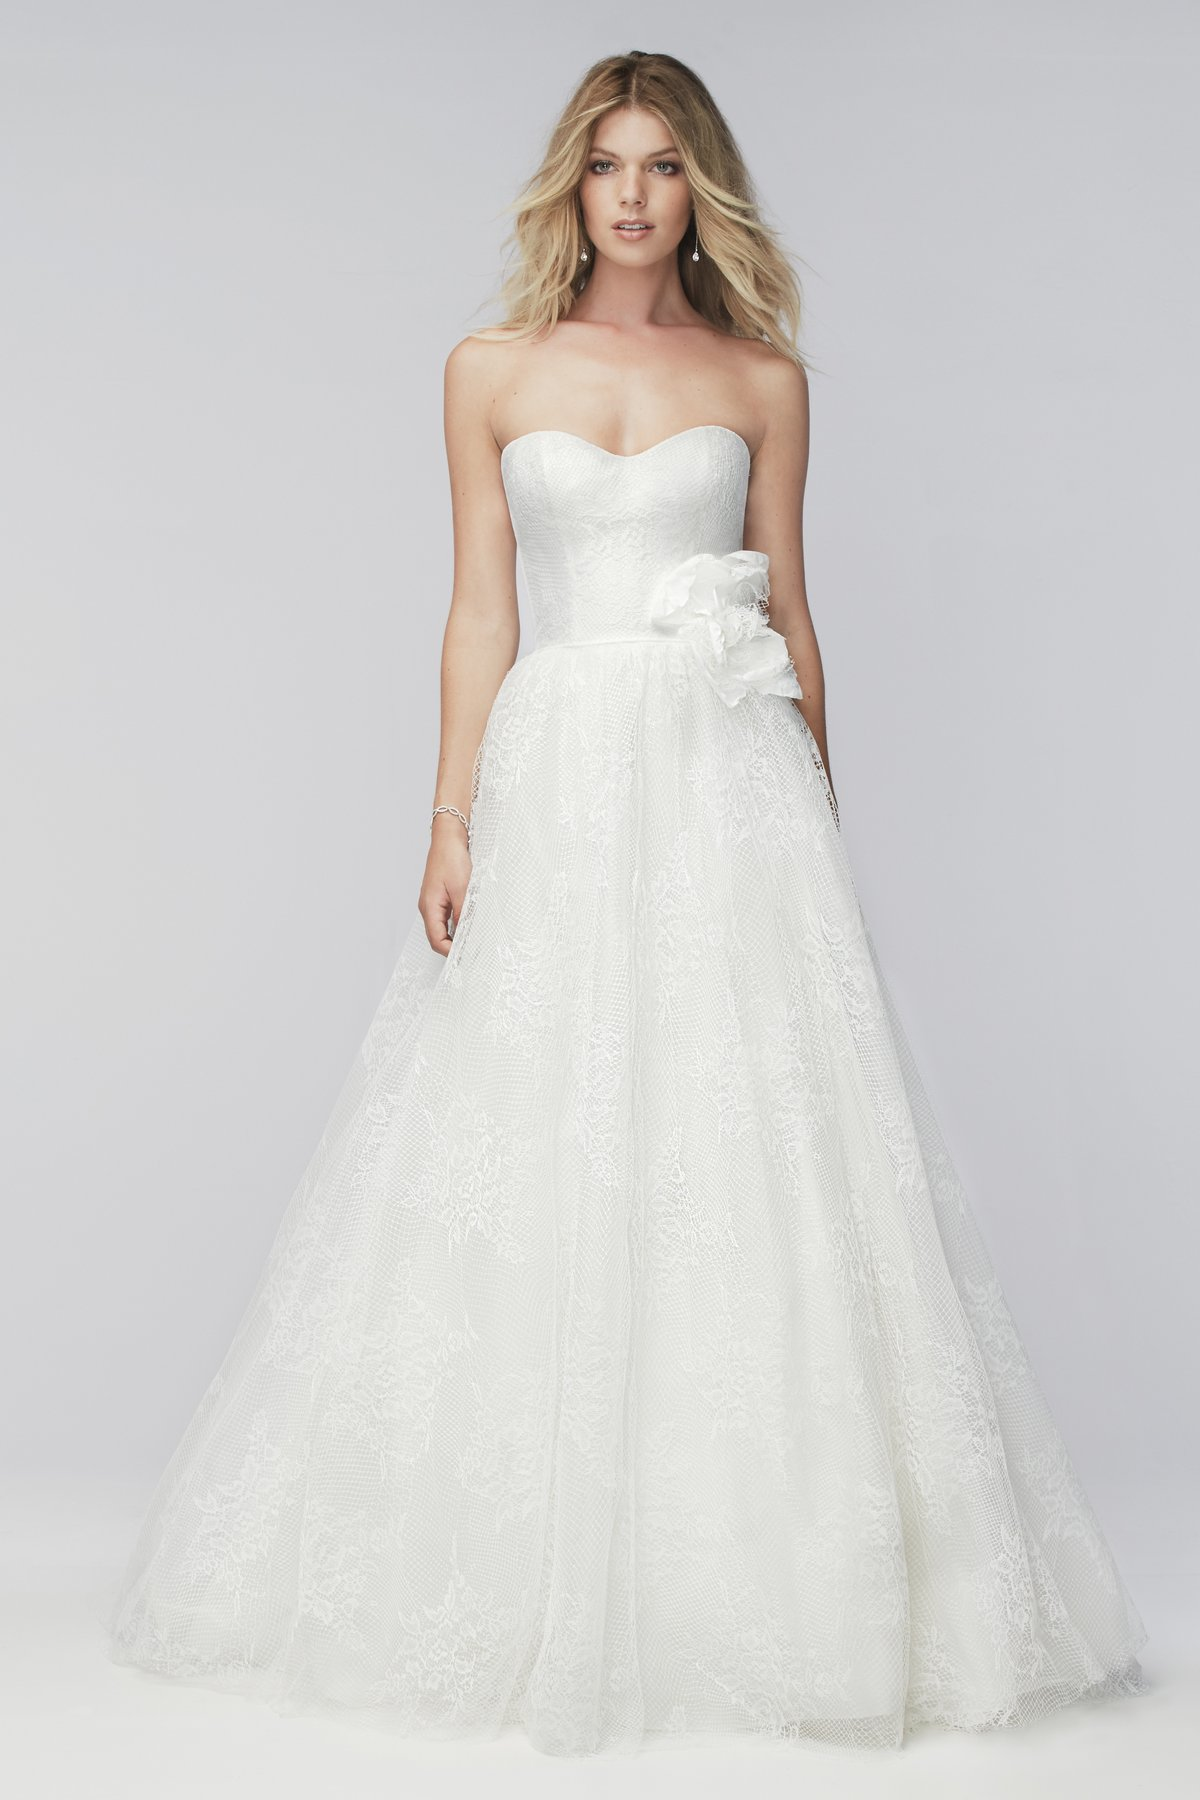 Lori G Wedding Dresses : Carson by wtoo wedding dress from lori g bridal derby